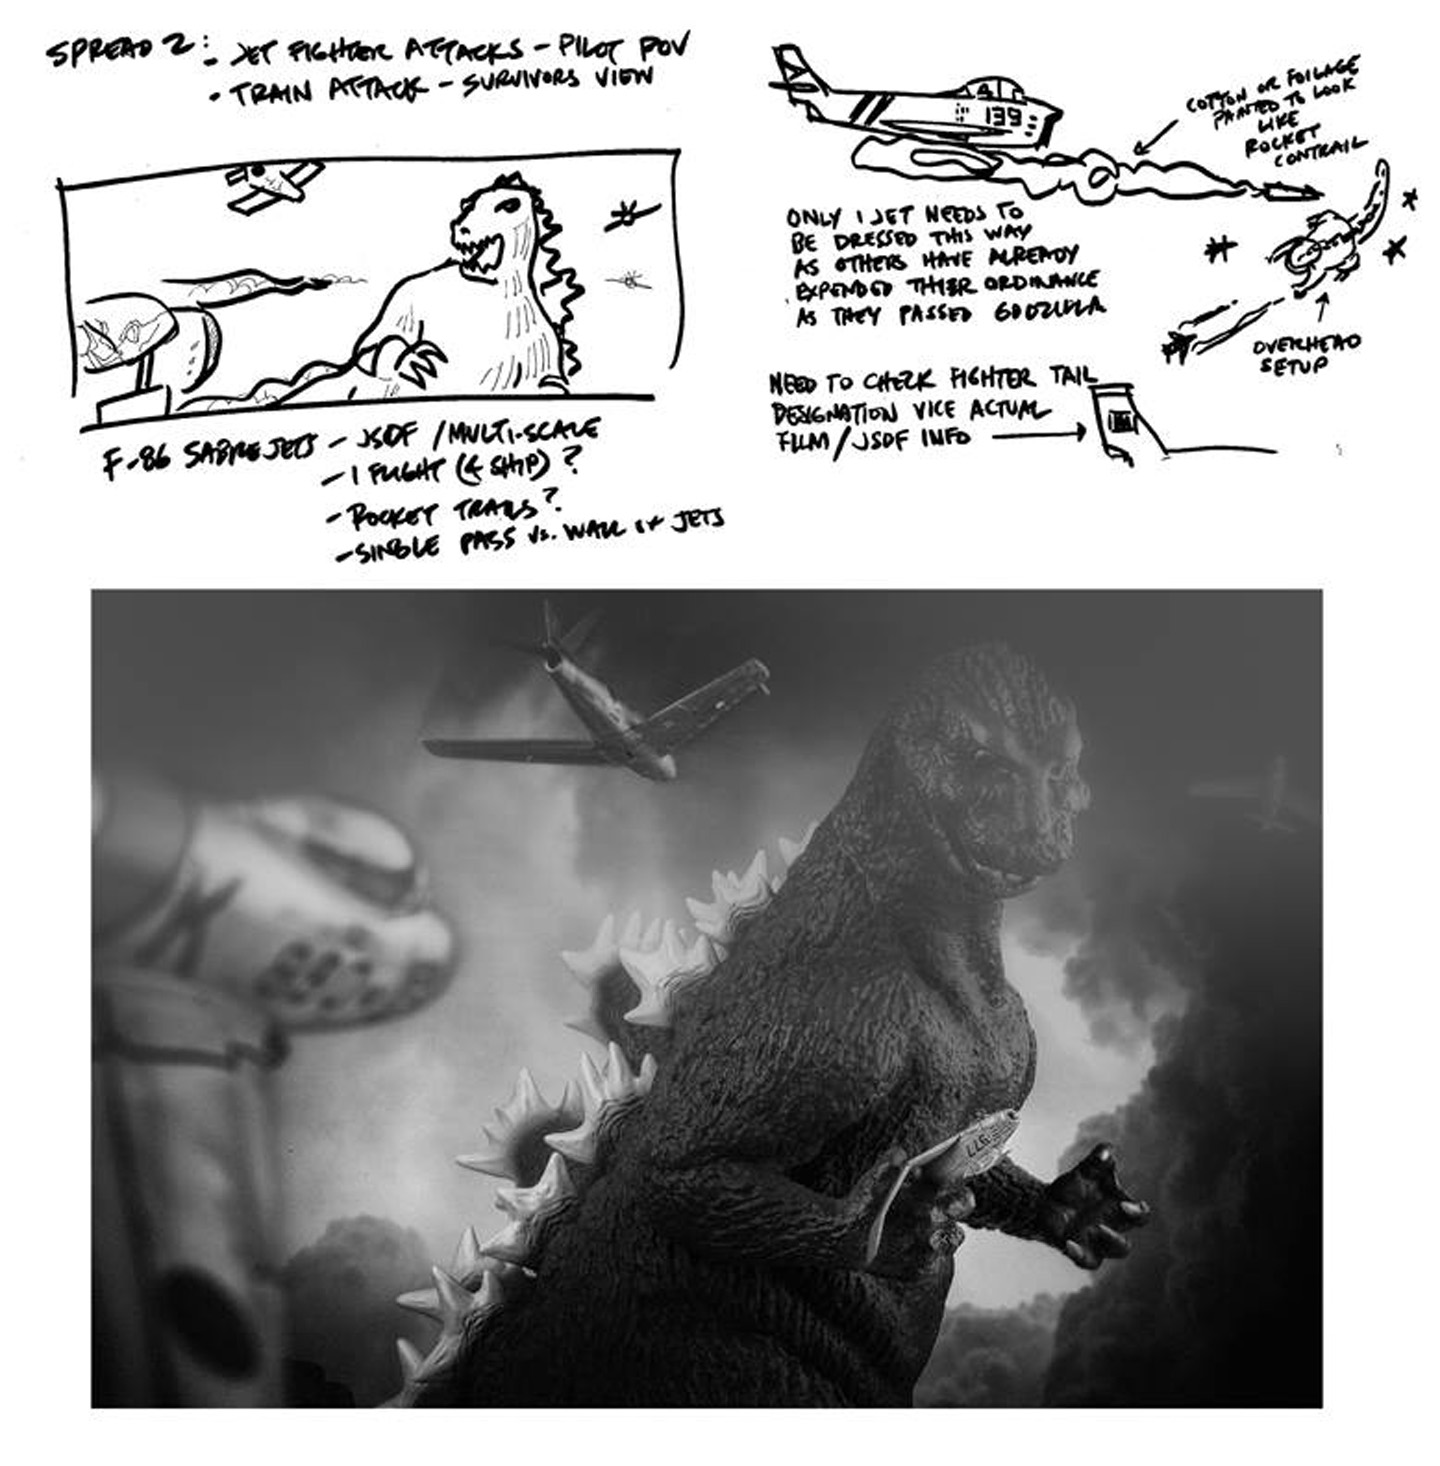 Henry's original  schematic along with one of the final shot based on the sketch.